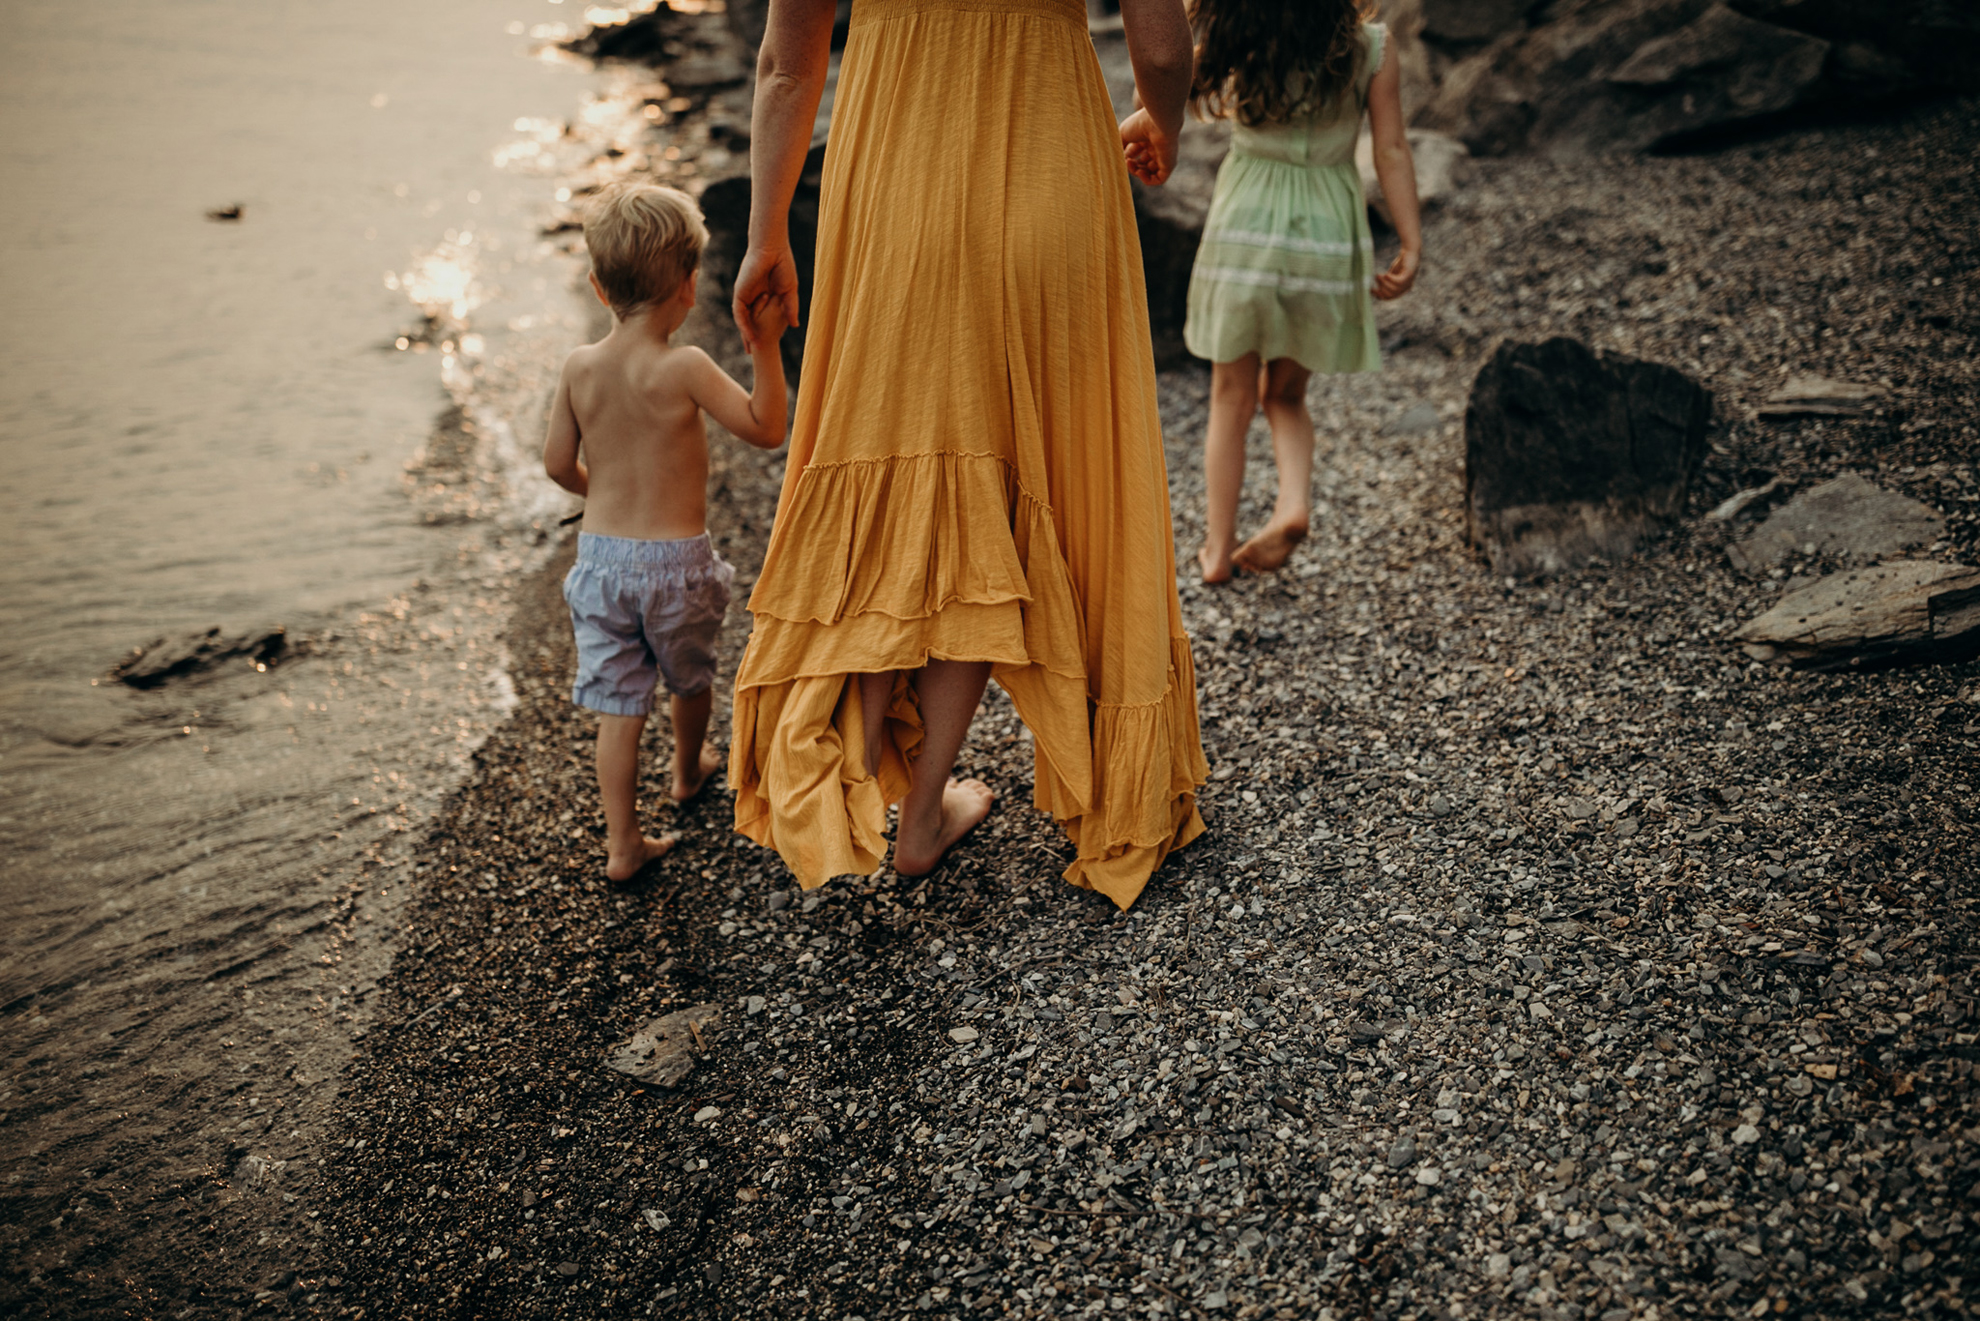 Salmon Arm Photography | ©The Paper Deer Photography | paperdeerphoto.com Alberta Family Photographer, Banff Family Photographer